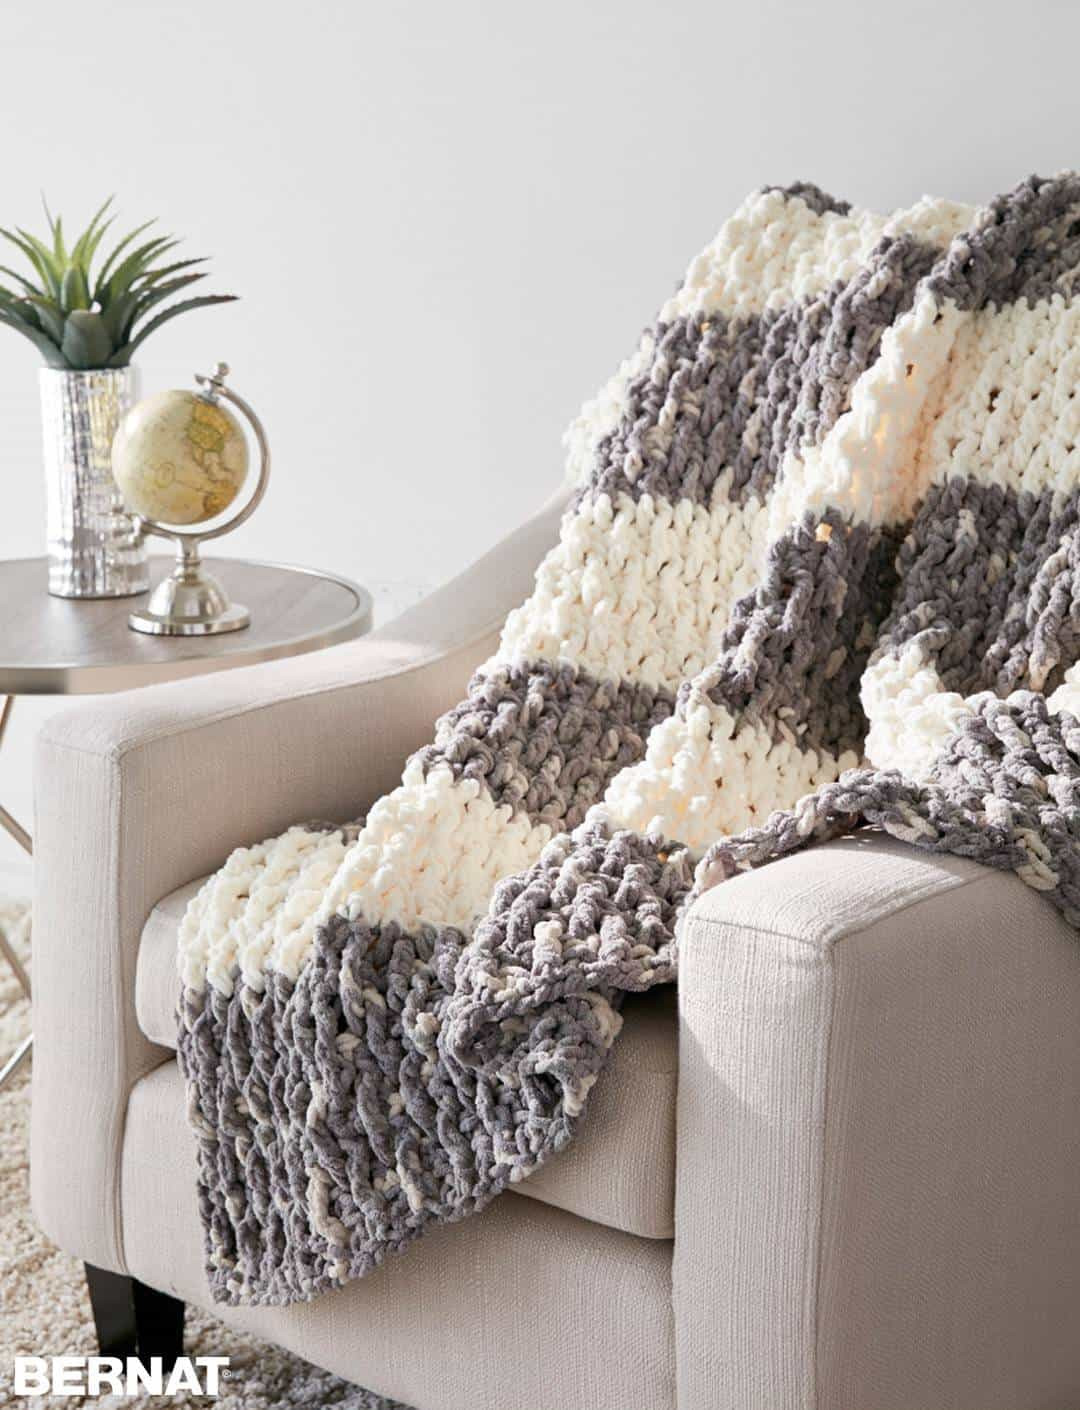 Crochet Throw Blanket Luxury 20 Awesome Crochet Blanket Patterns for Beginners Ideal Me Of Great 44 Pics Crochet Throw Blanket